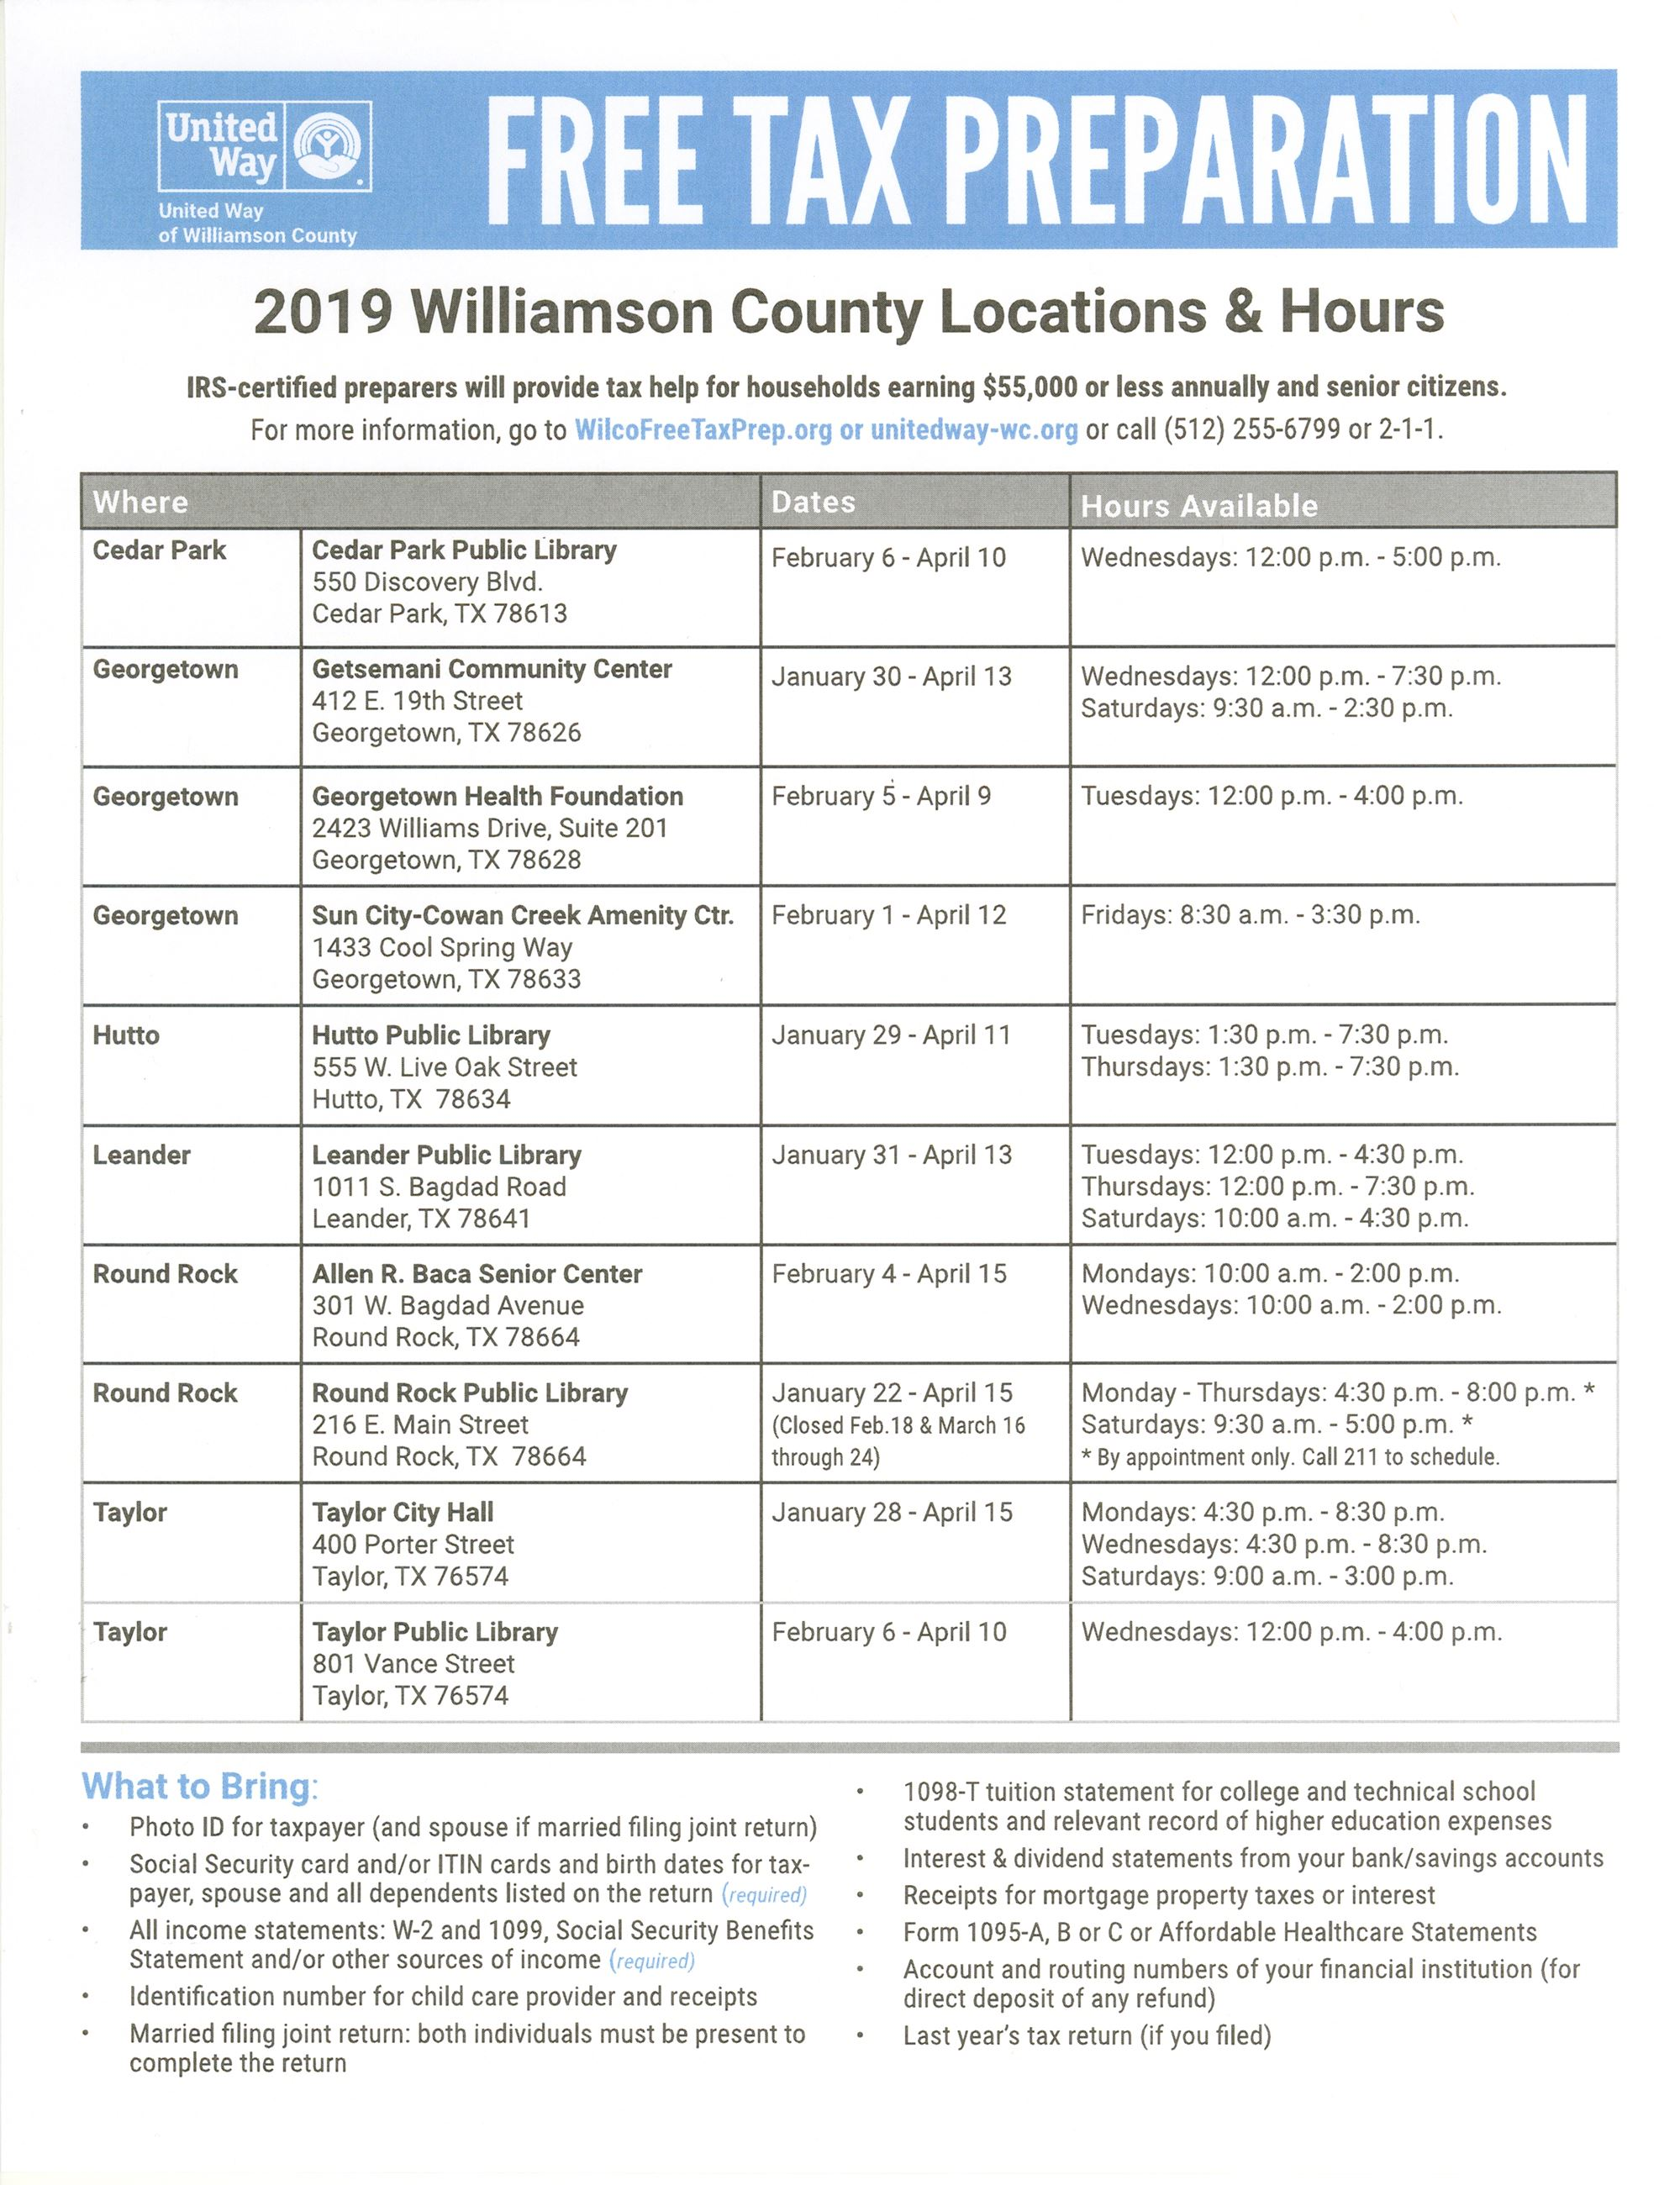 2019 Tax Assistance in Williamson County English